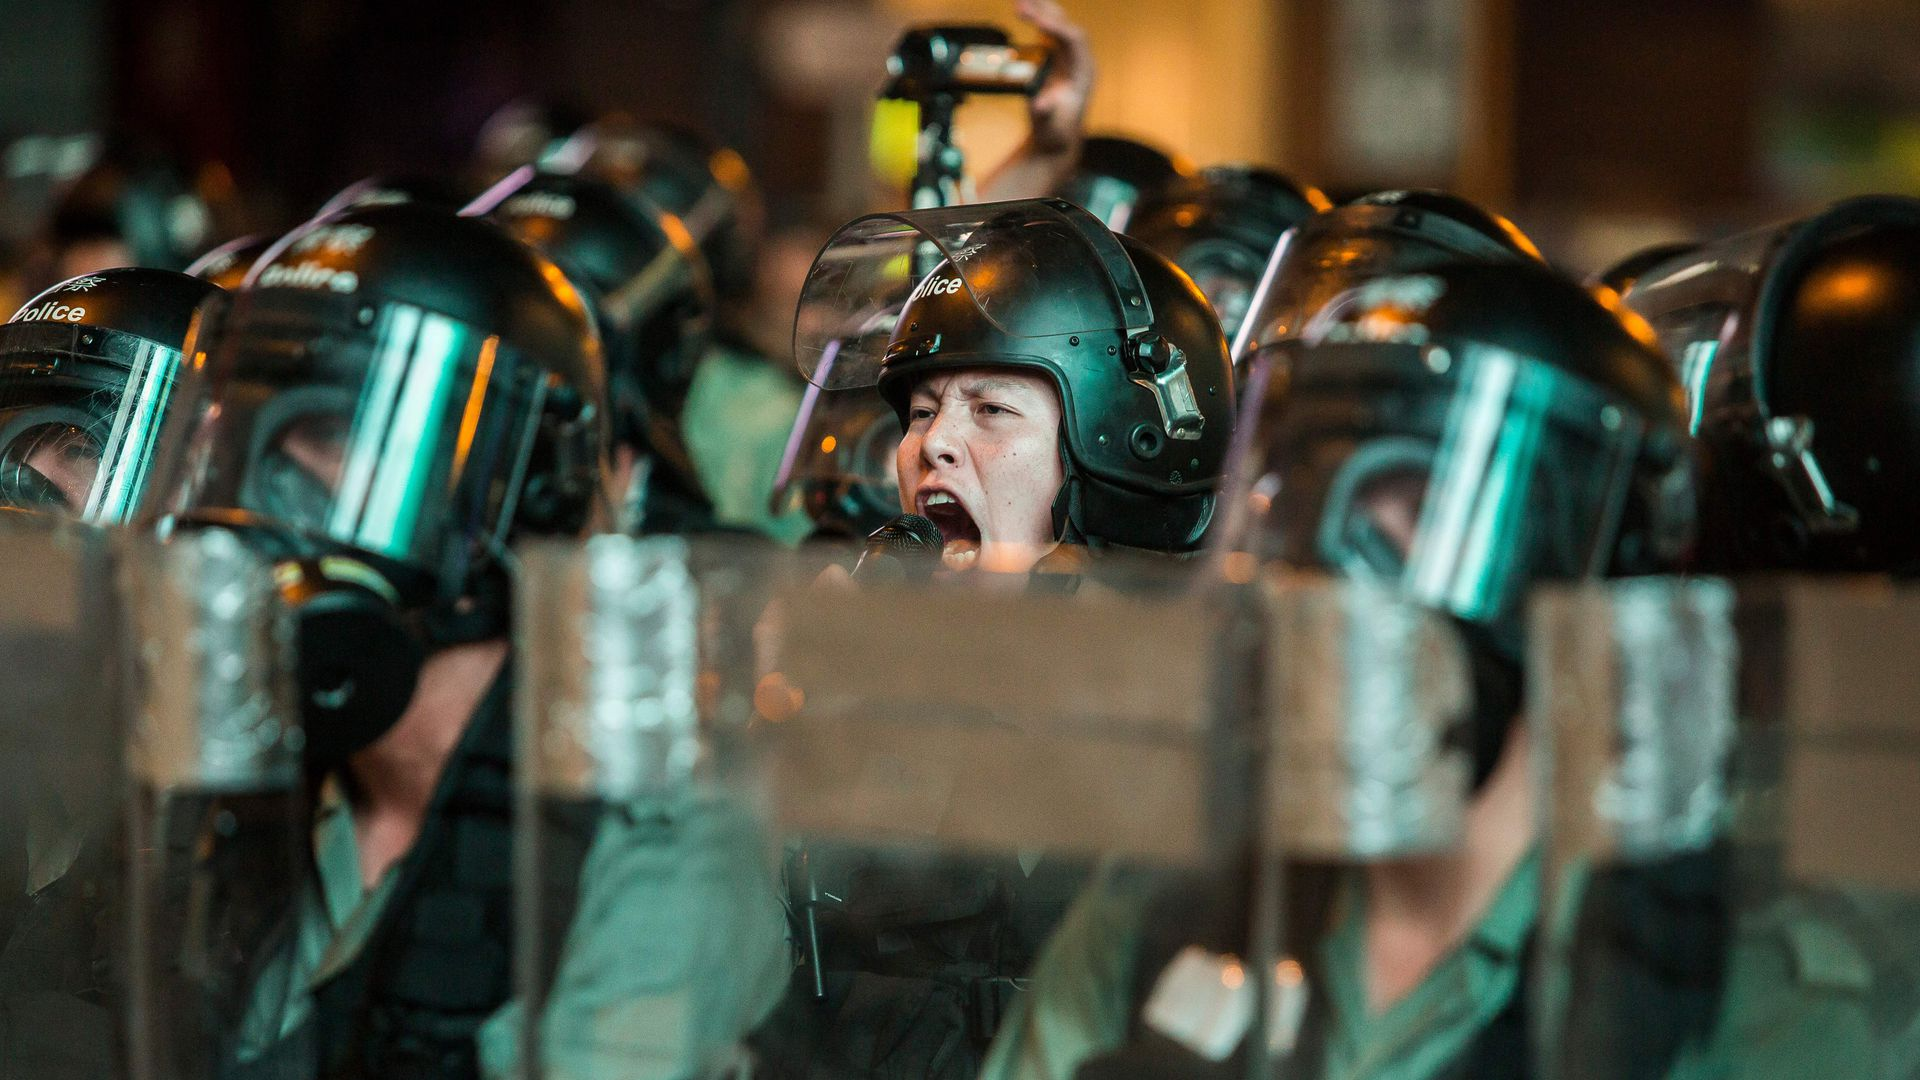 This image shows a riot officer yelling with his face exposed in a line of helmeted officers.